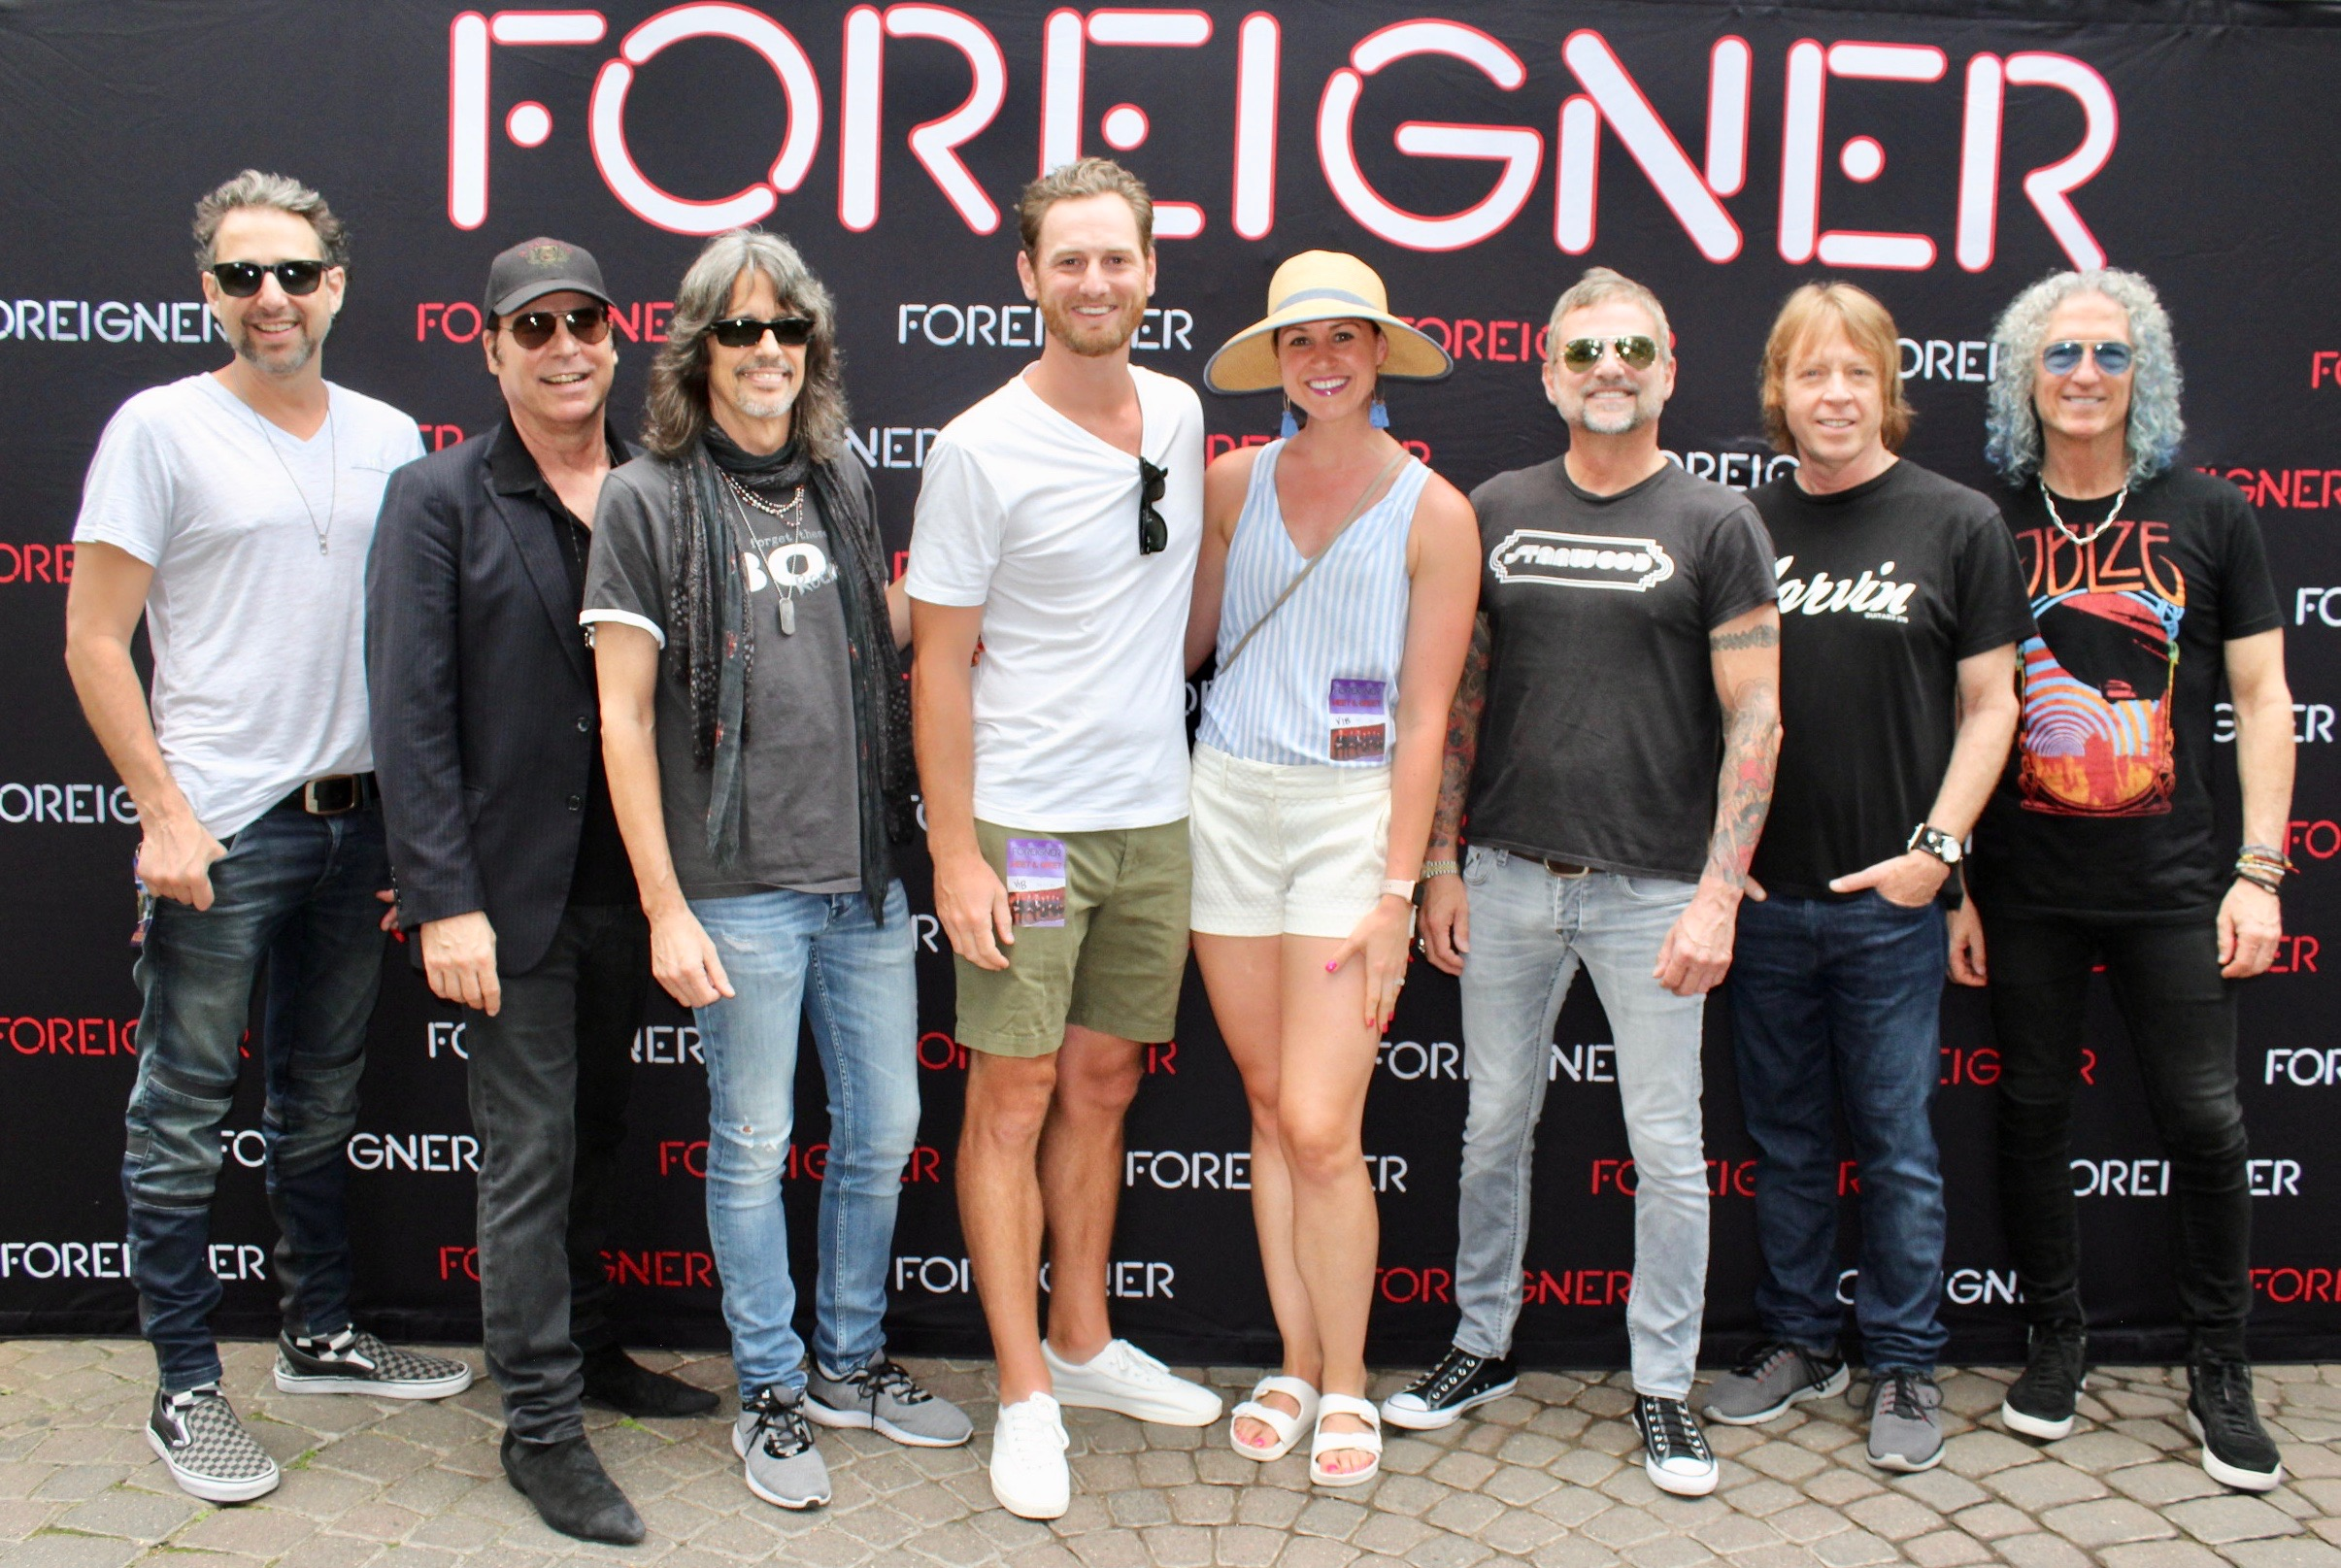 Foreigner Band.jpeg